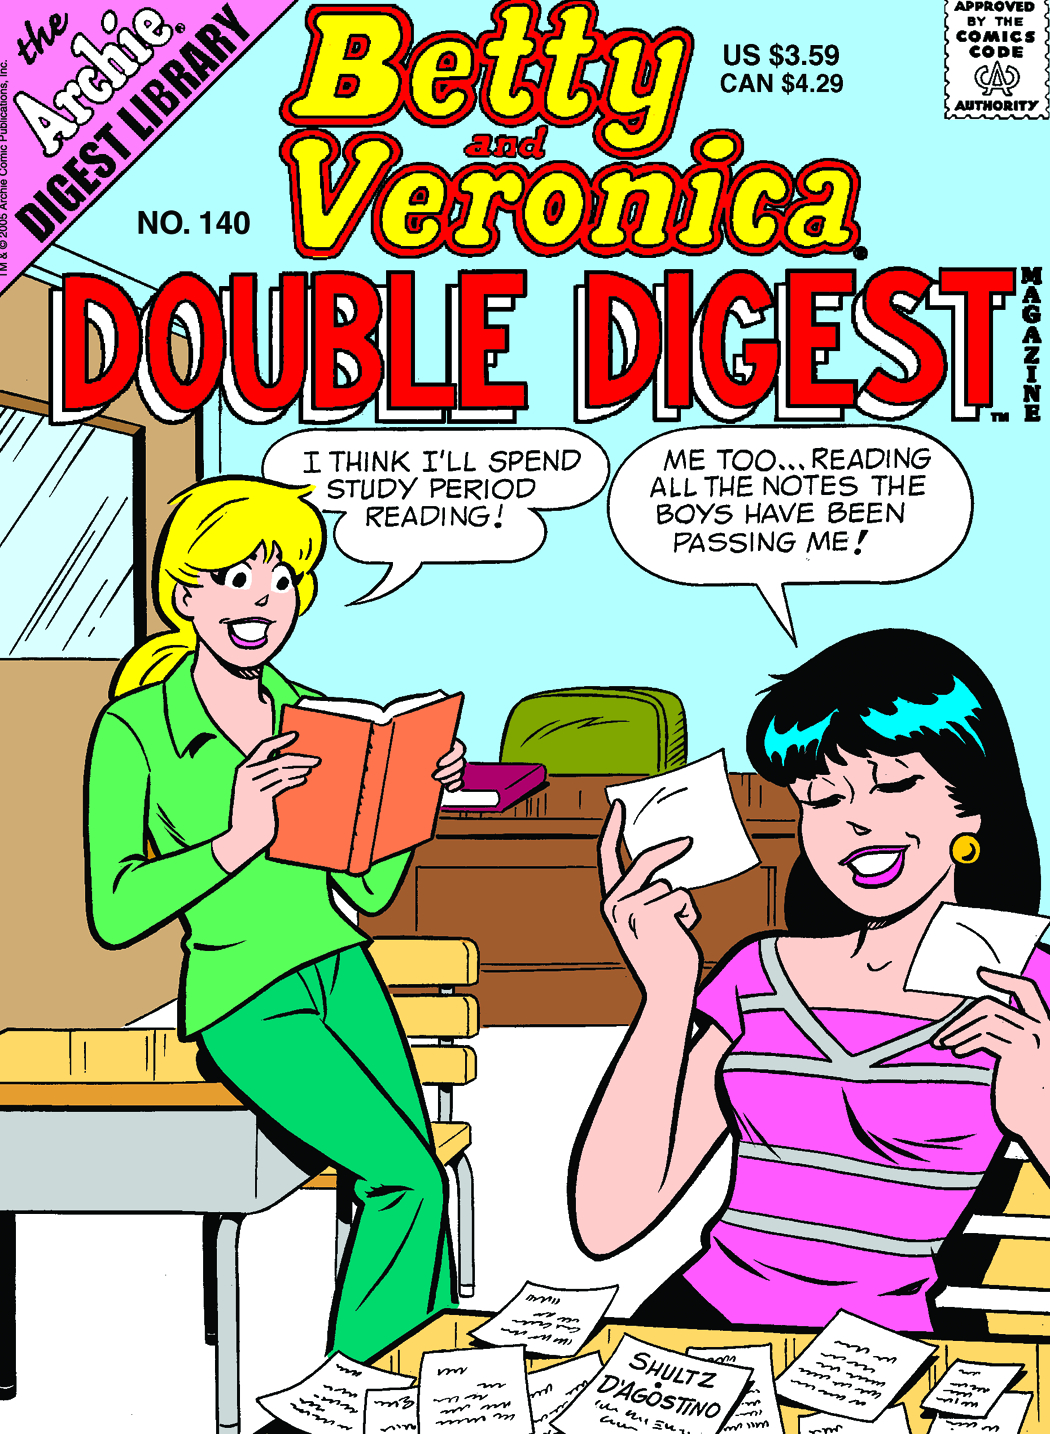 BETTY & VERONICA DOUBLE DIGEST #140